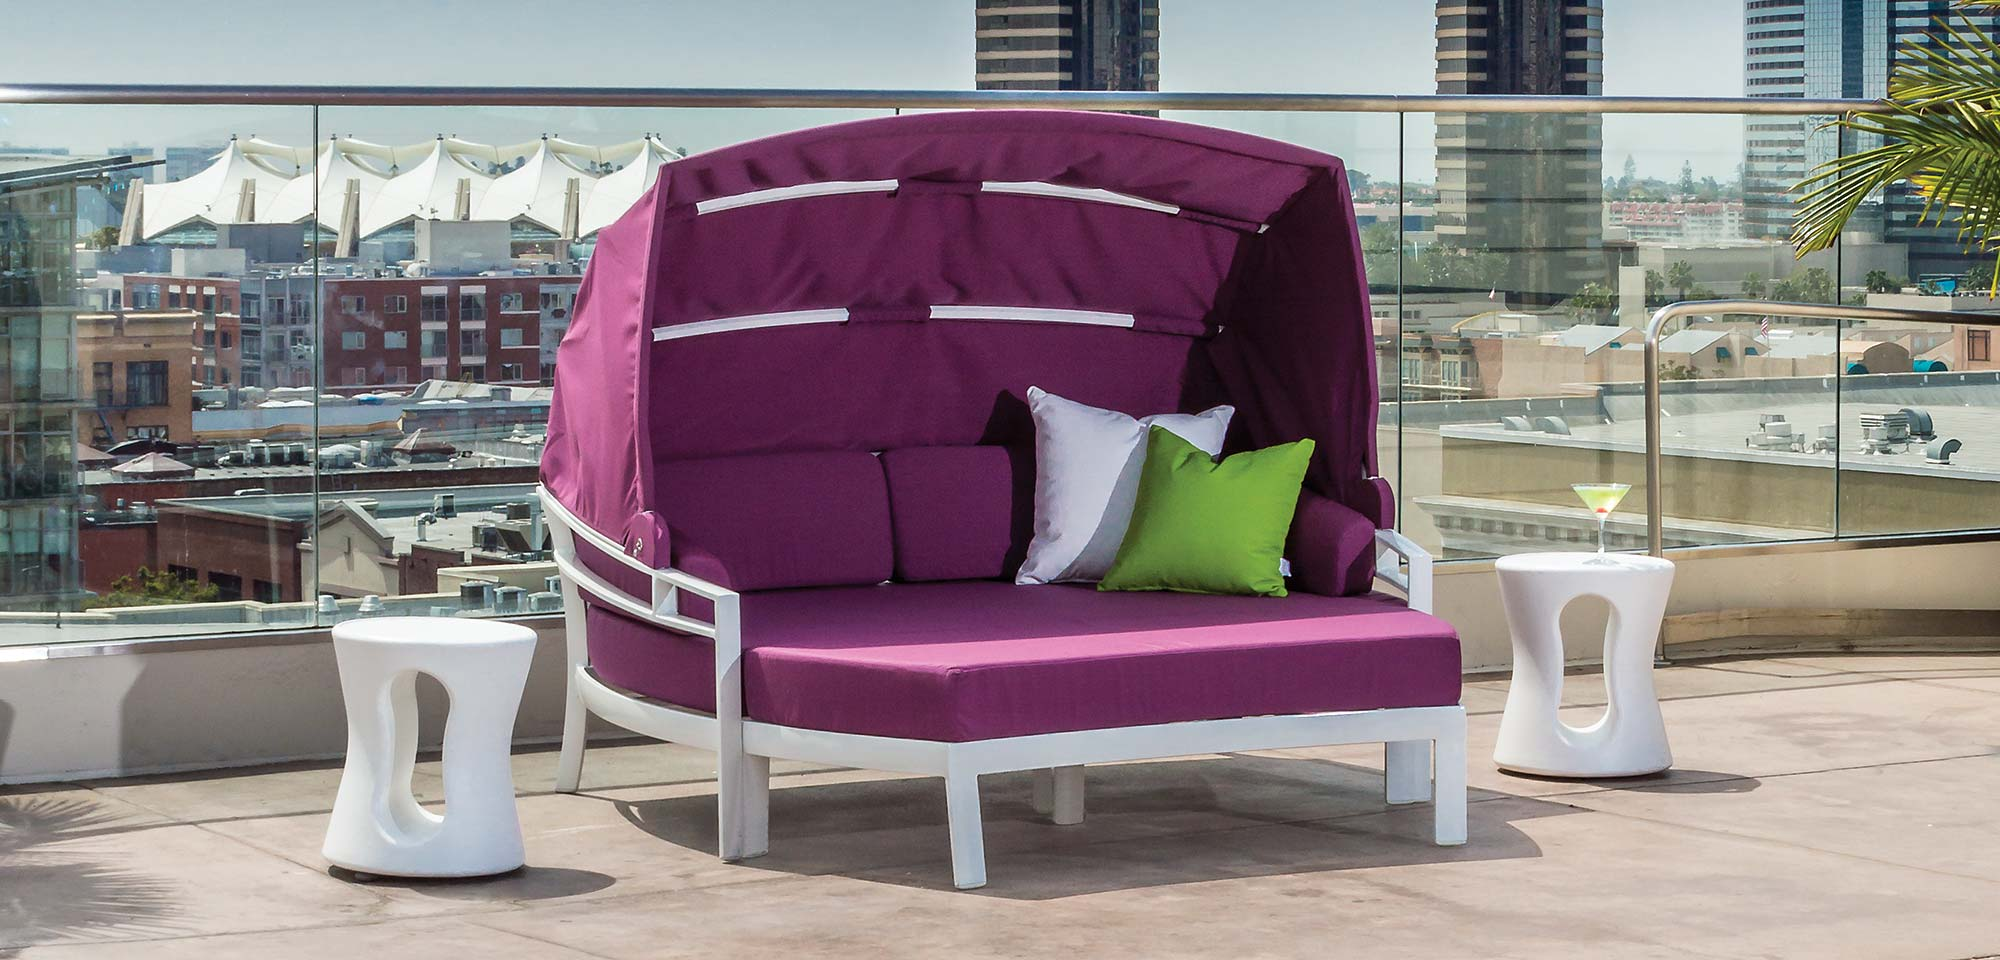 Commercial Outdoor Furniture Patio Furniture Outdoor Furniture - Discount patio furniture atlanta